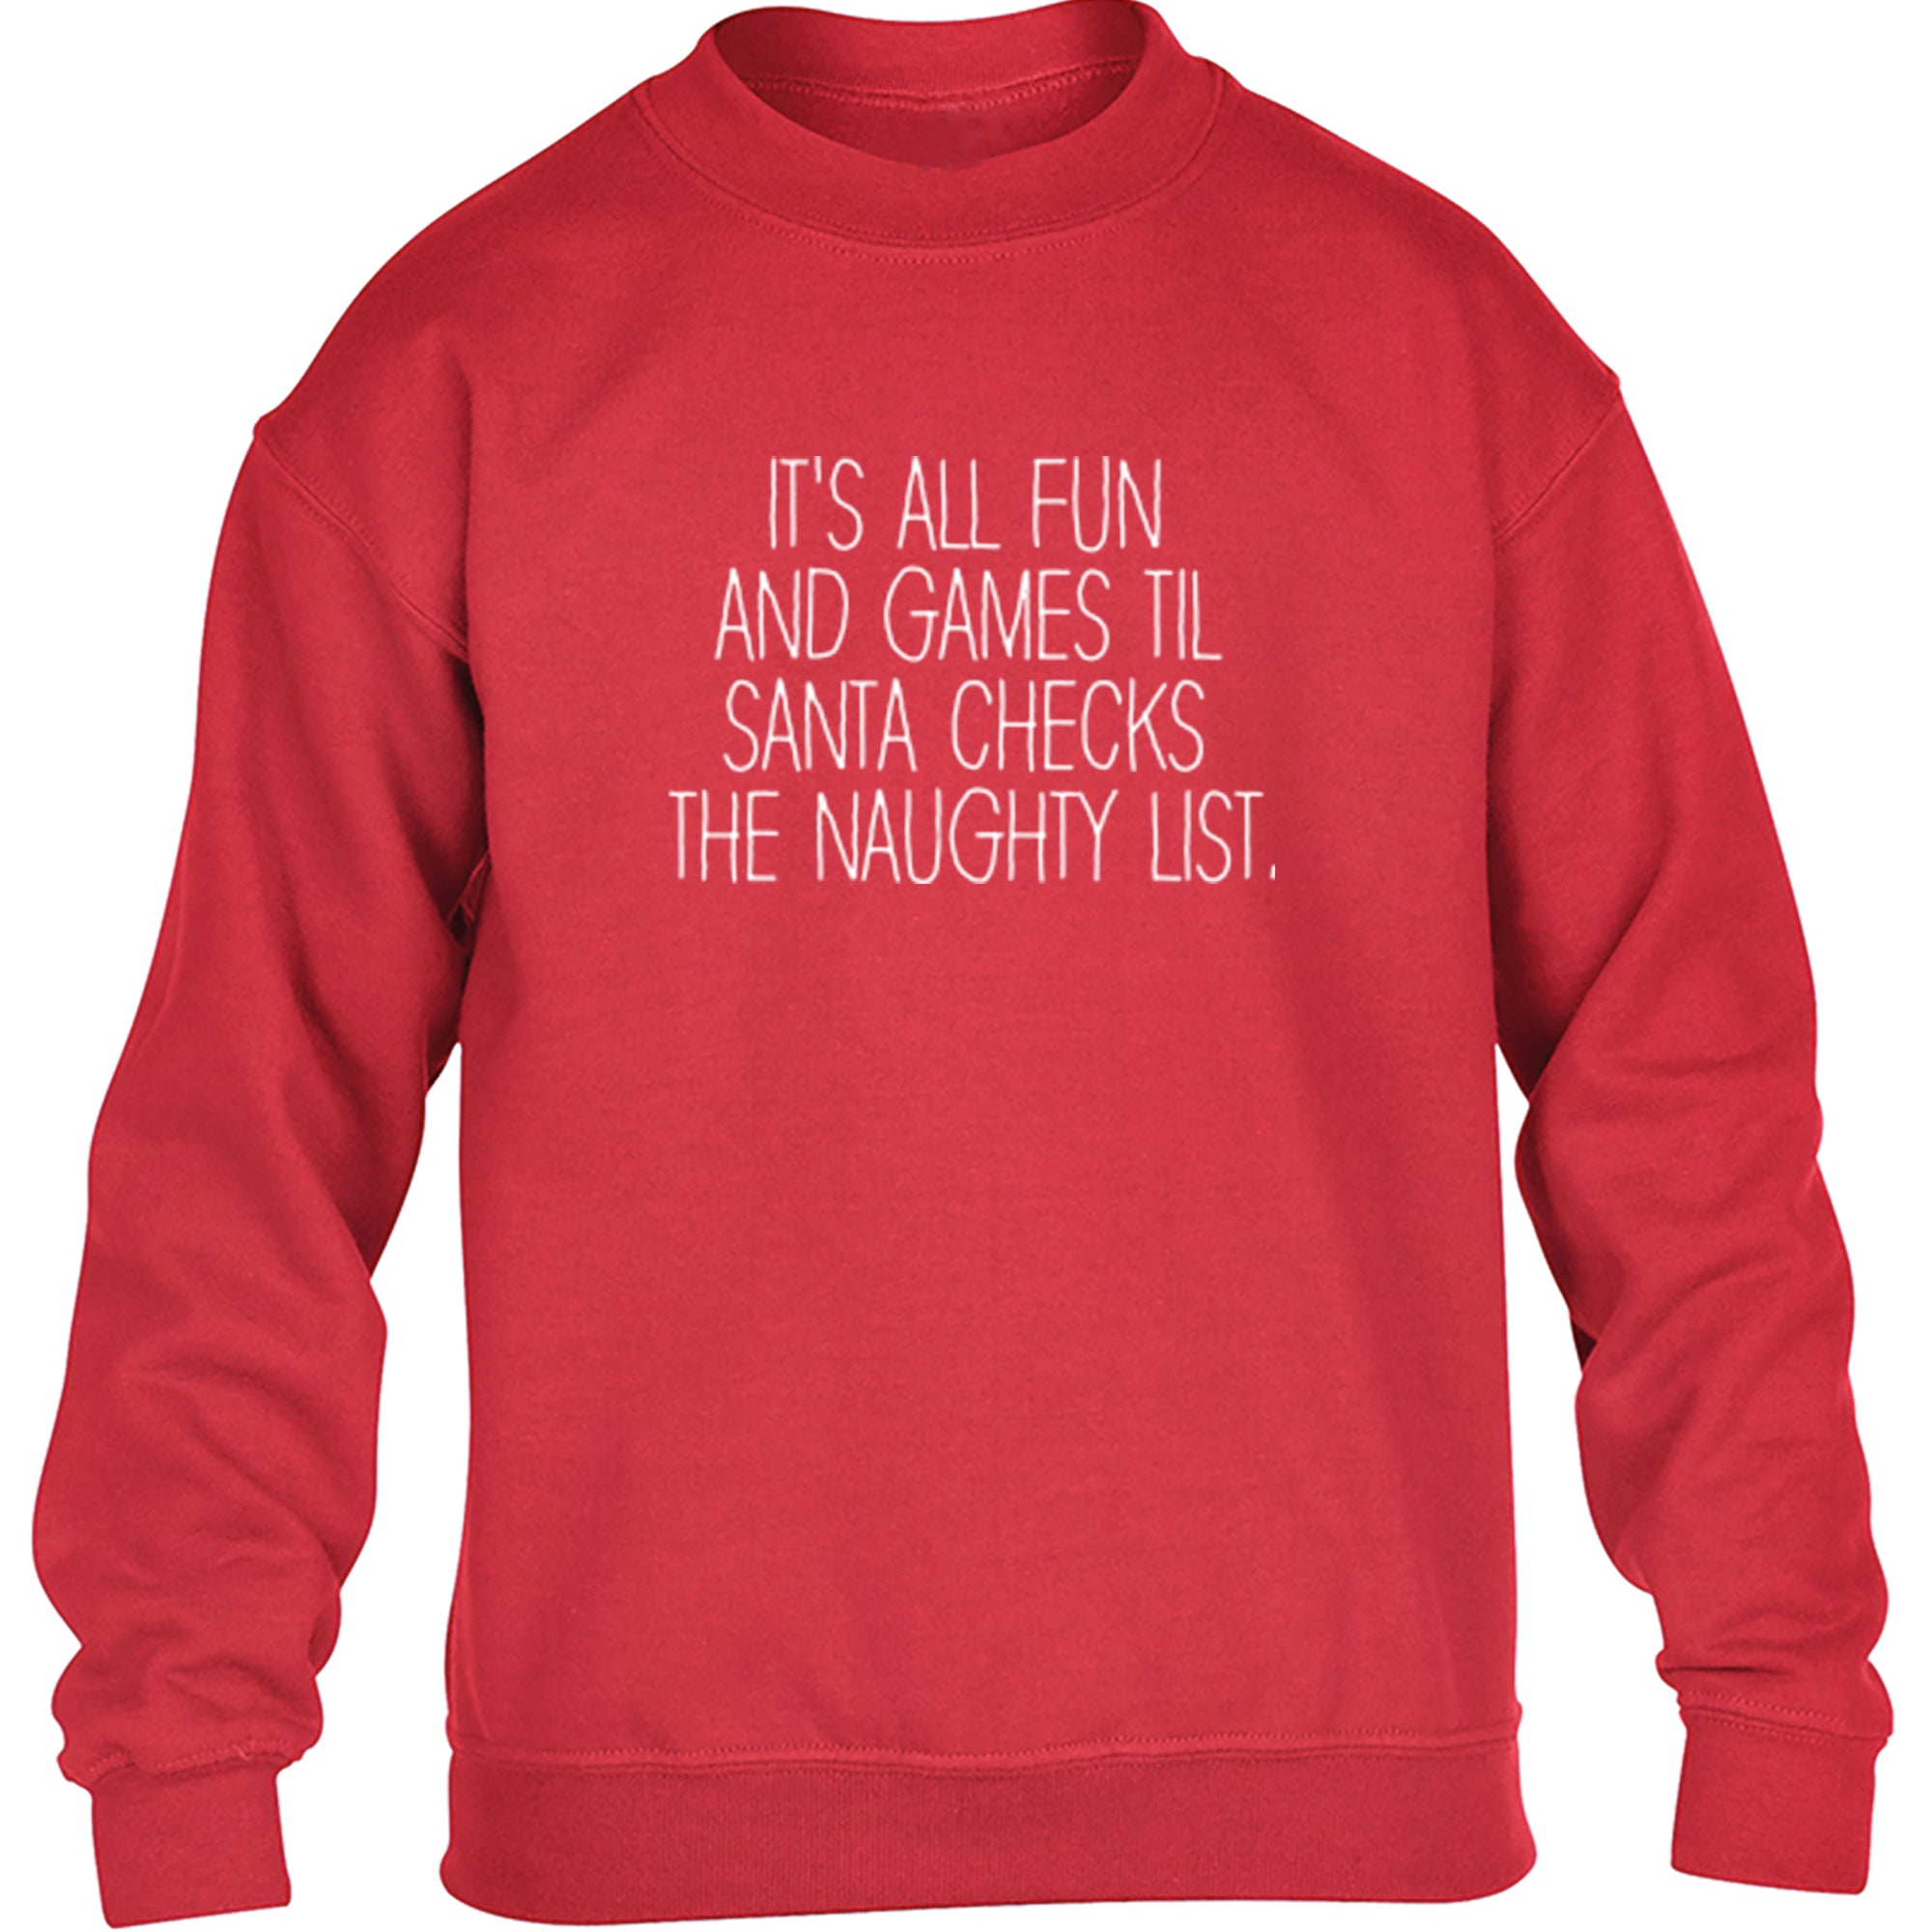 It's All Fun And Games Til Santa Checks The Naughty List Childrens Ages 3/4-12/14 Printed Jumper S0896 - Illustrated Identity Ltd.